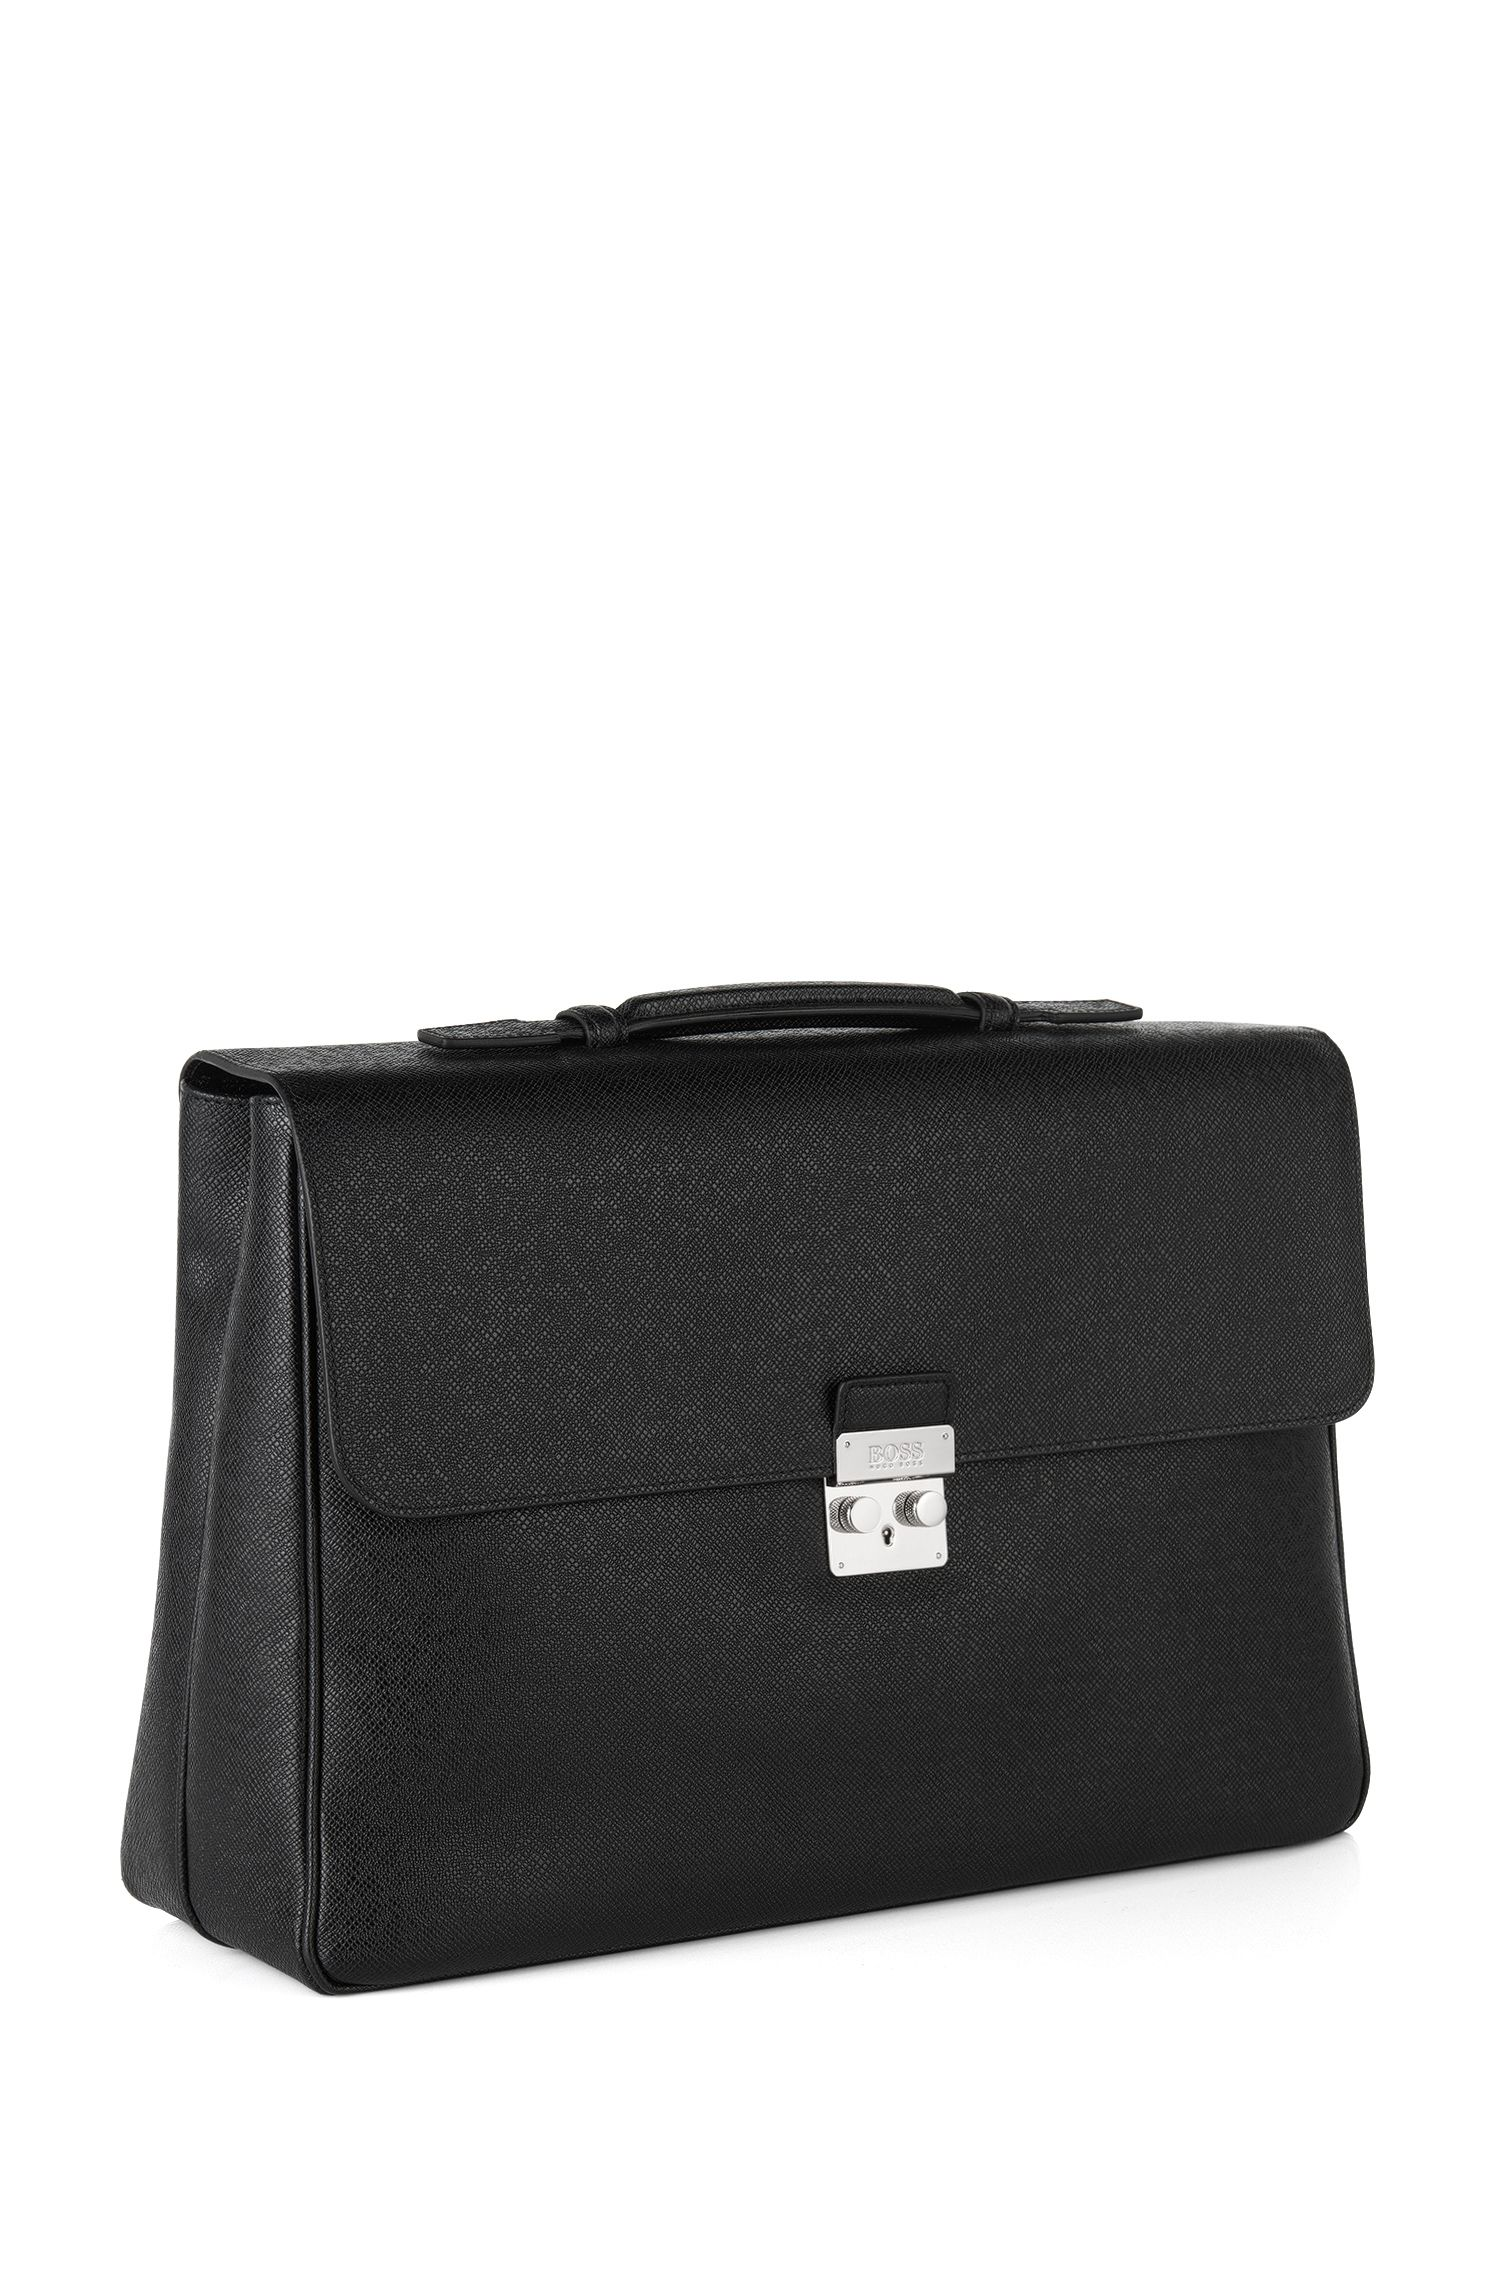 Porte-documents en cuir : « Signature_Briefcase »